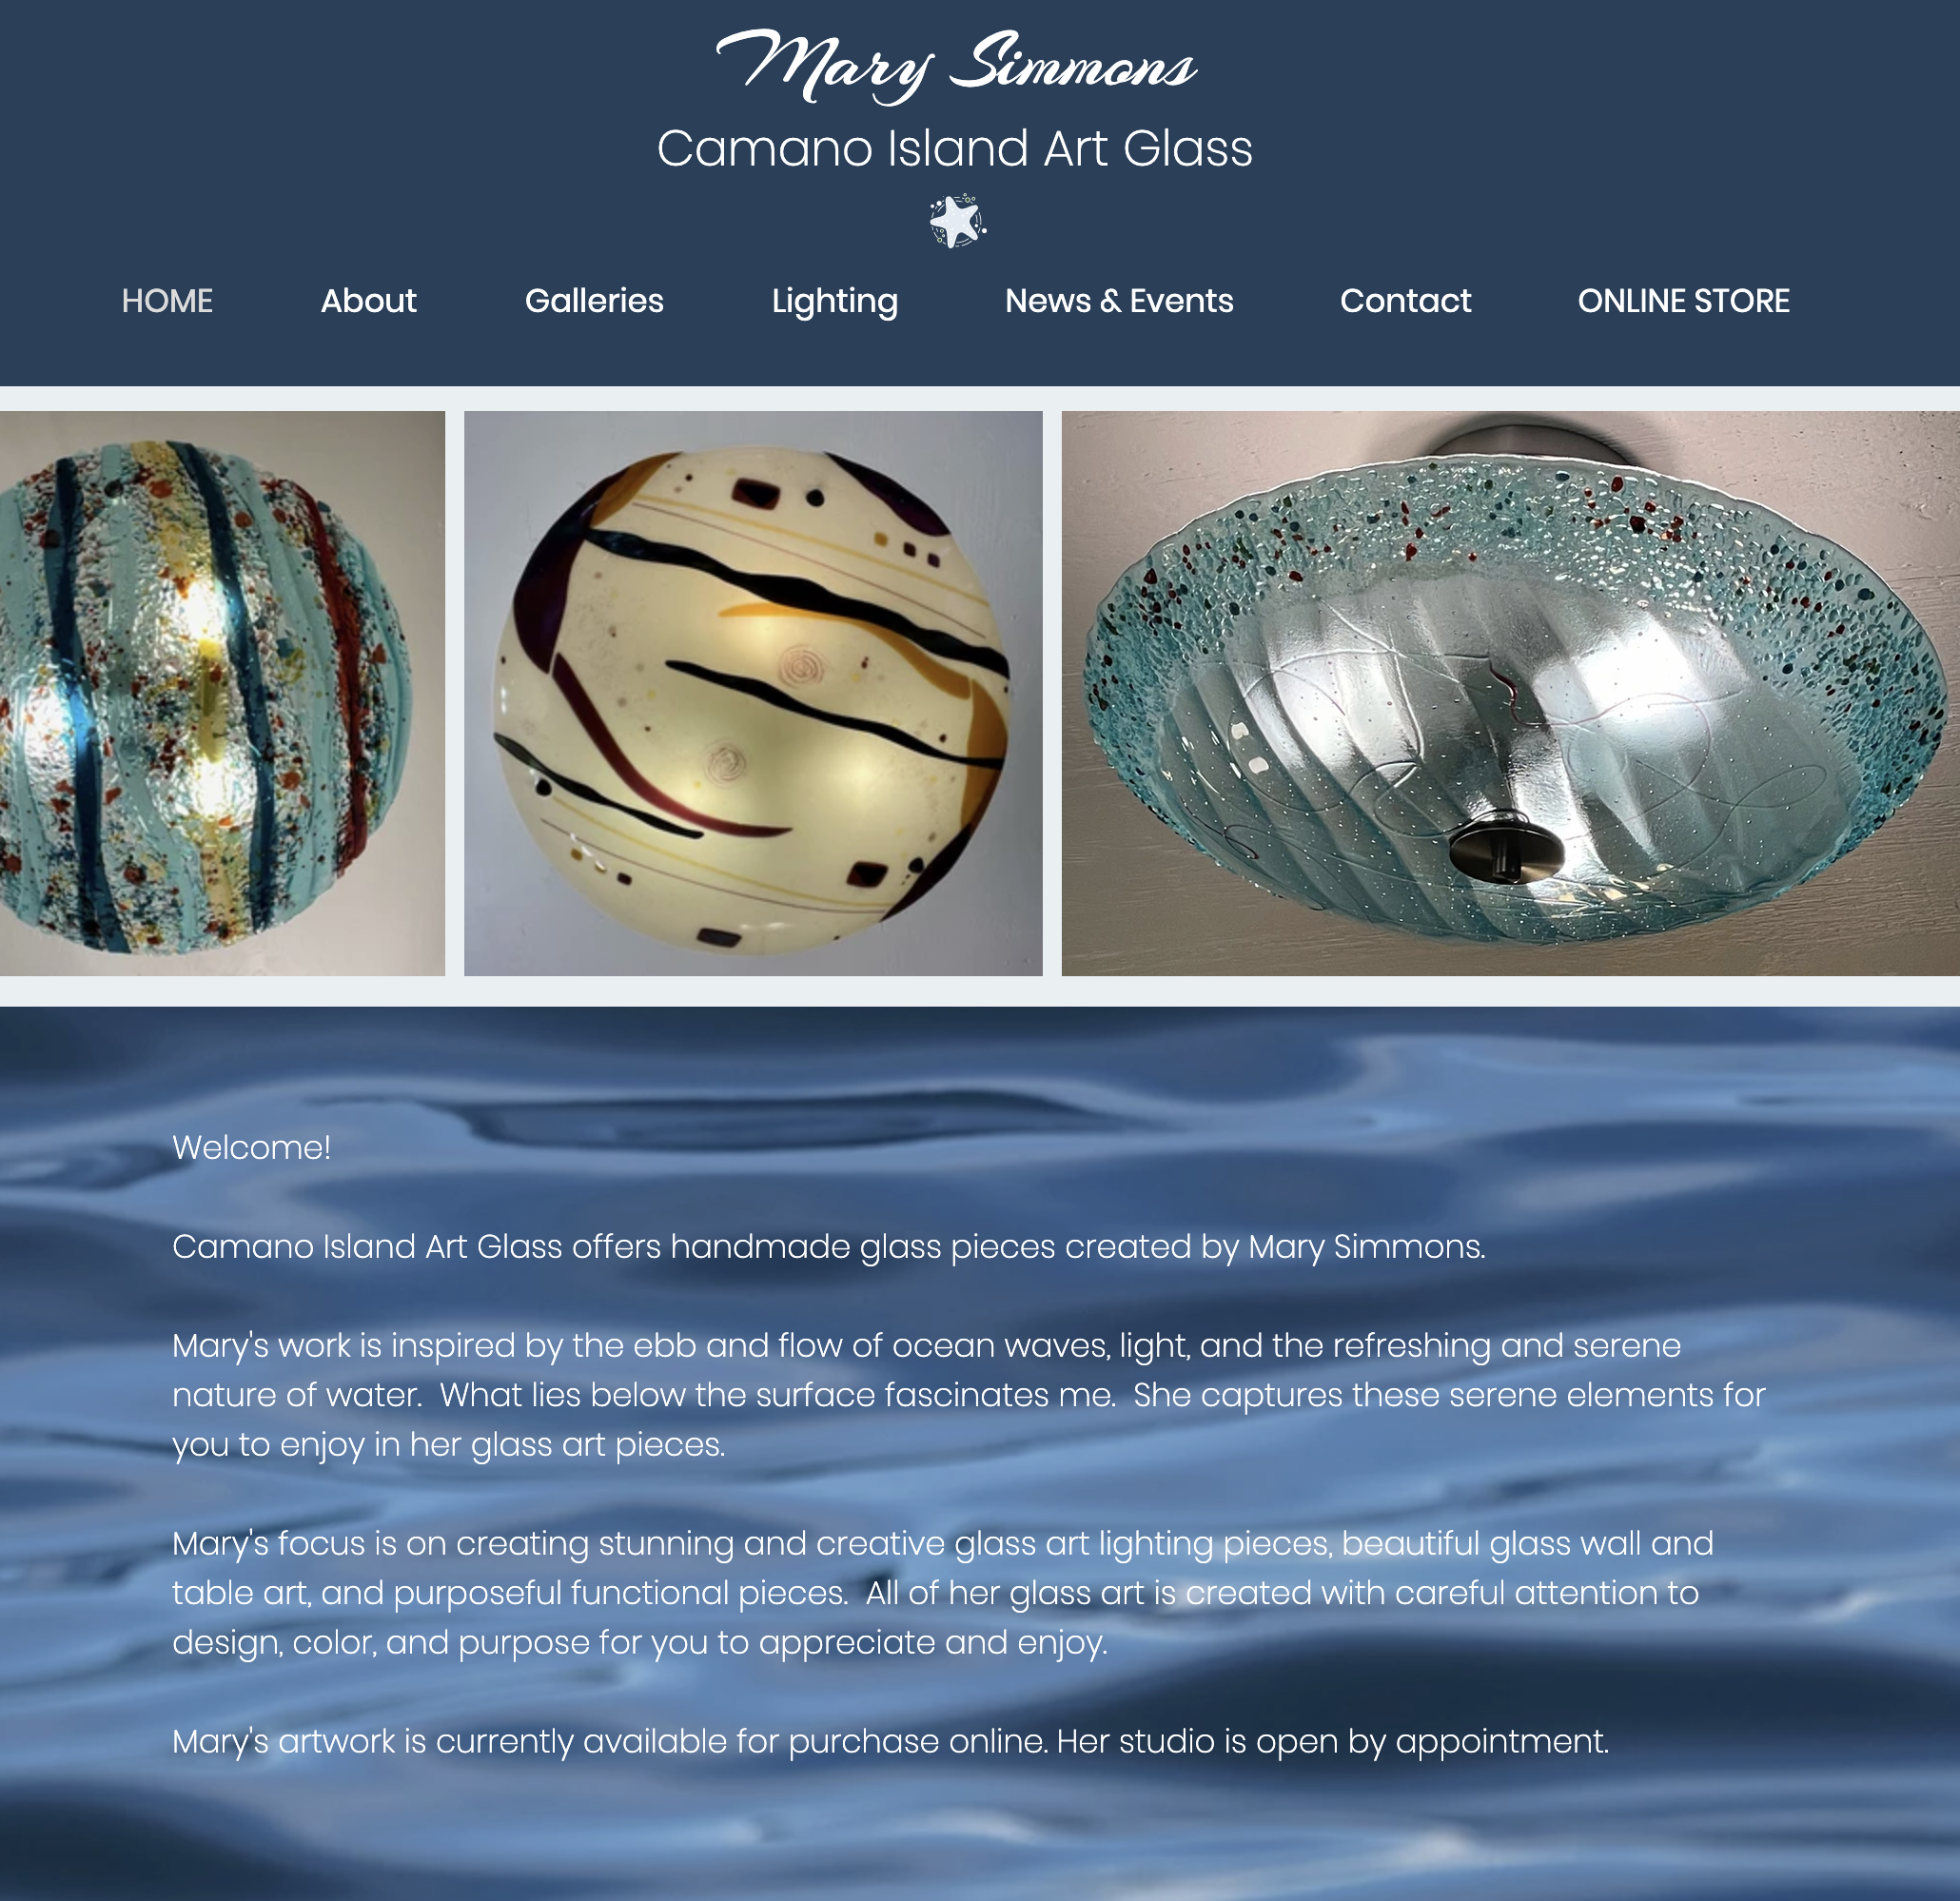 Camano Island Art Glass